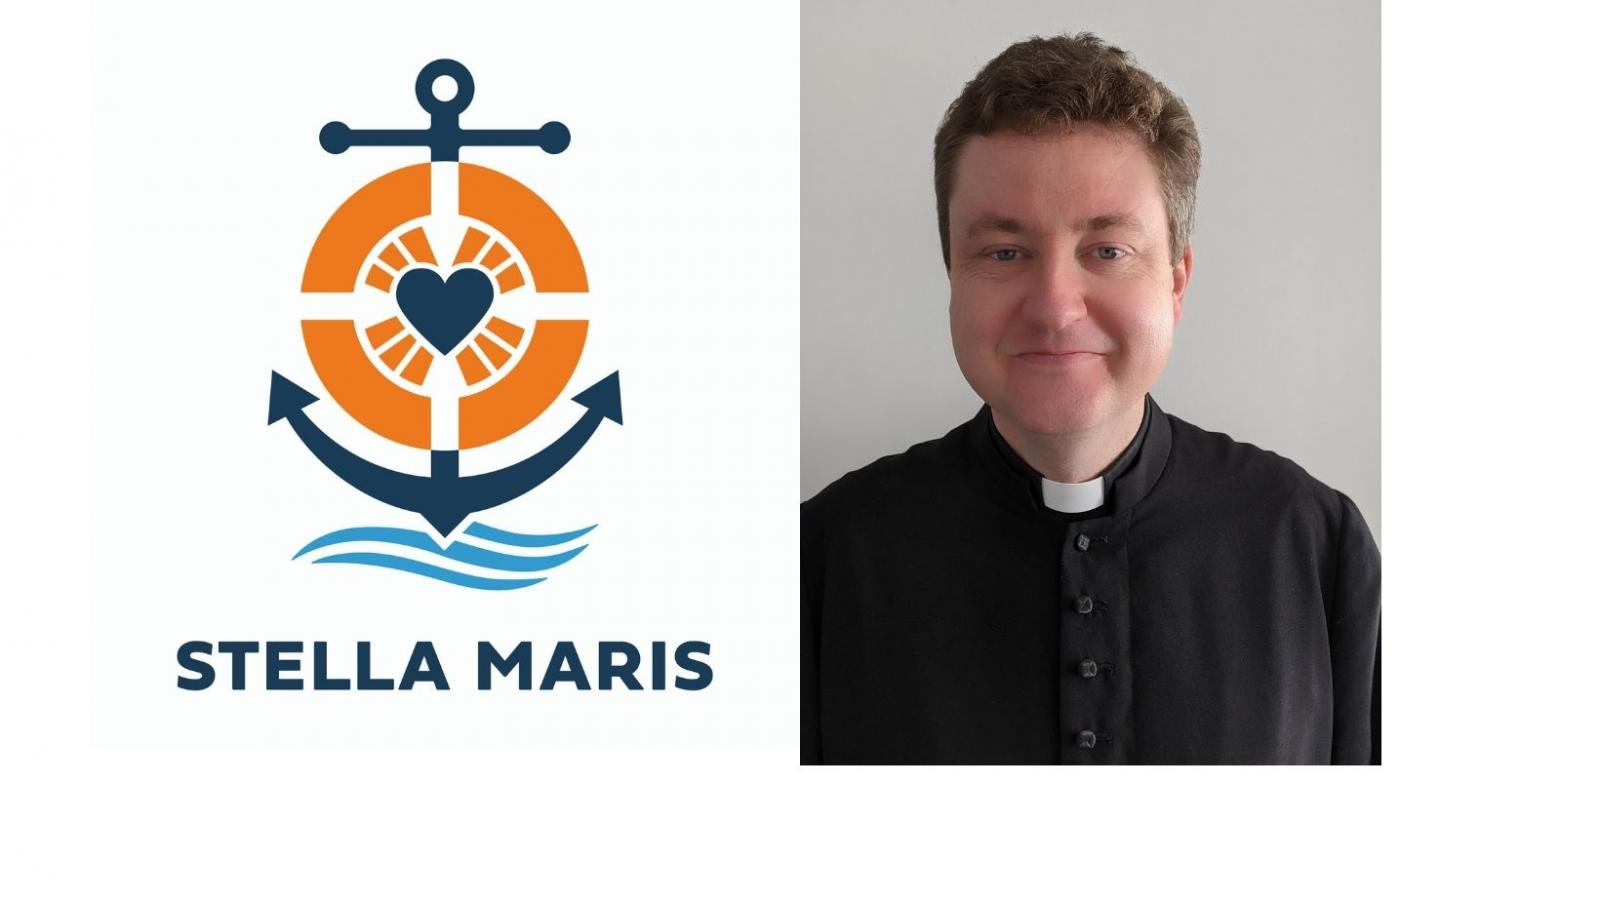 Fr David Burke returns to seafarers' charity Stella Maris as Trustee - Diocese of Westminster